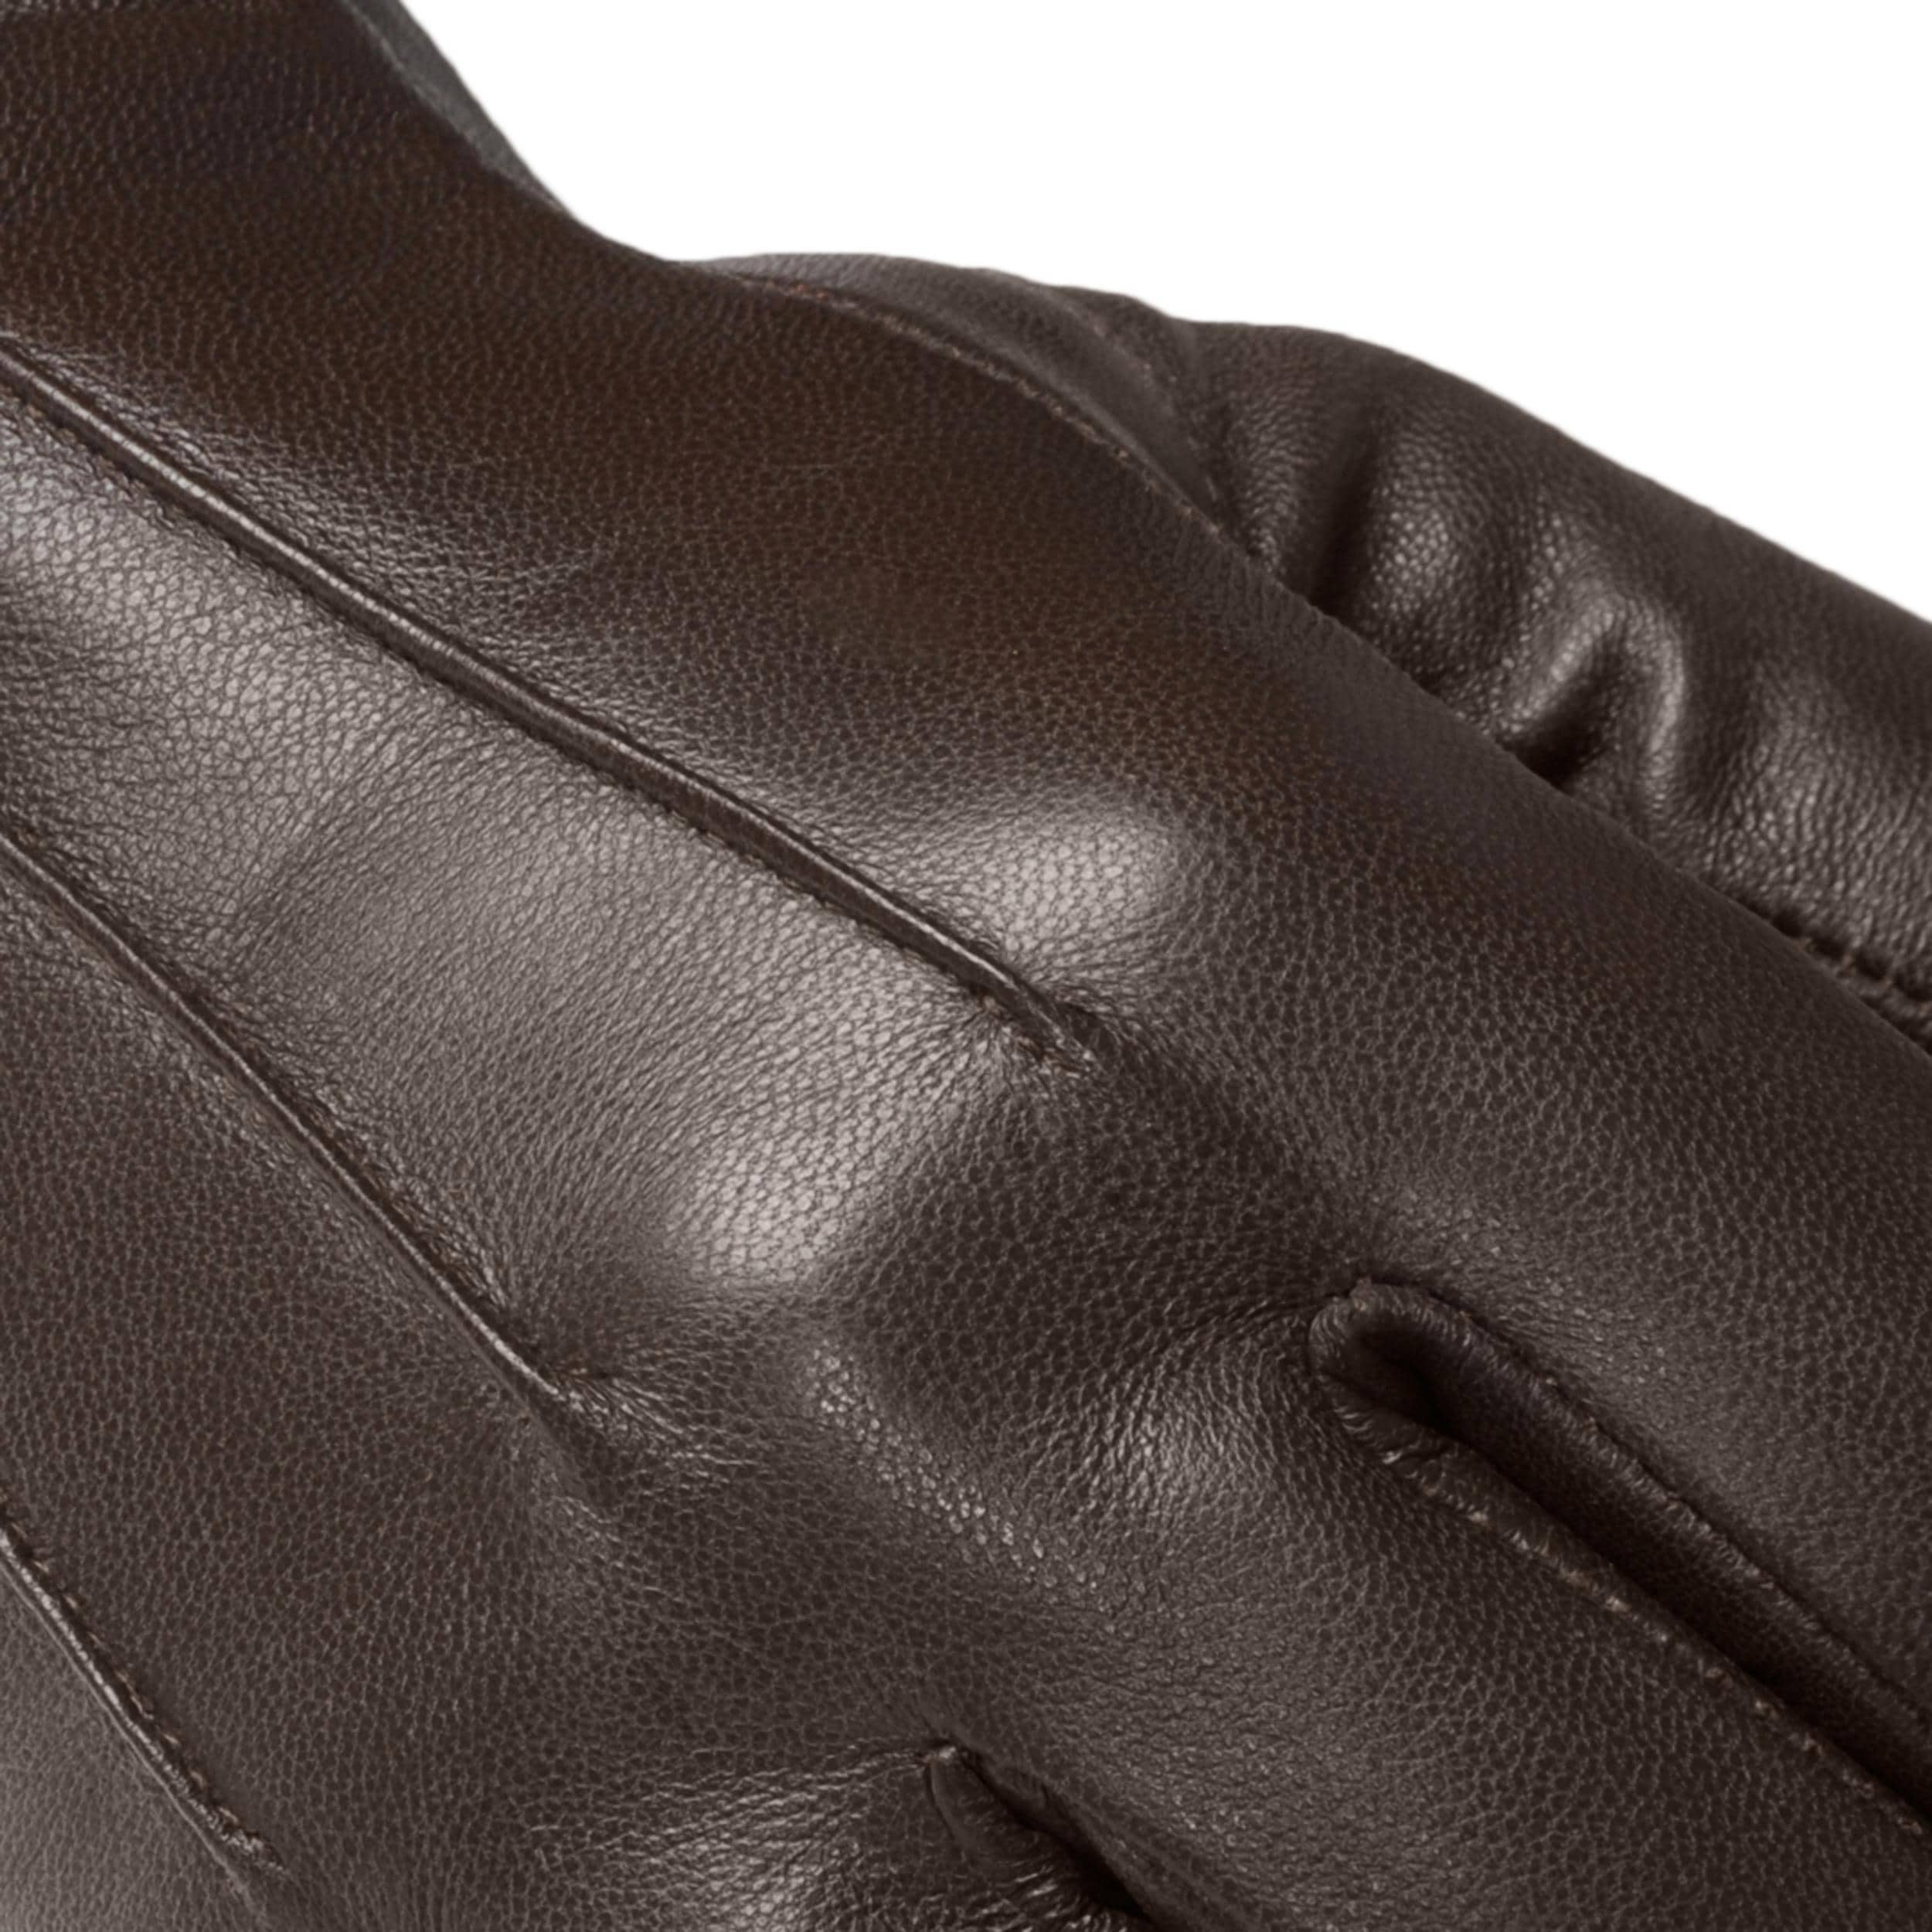 Boston Traveler Men's Genuine Leather Thinsulate Lined Gloves - Thumbnail 2